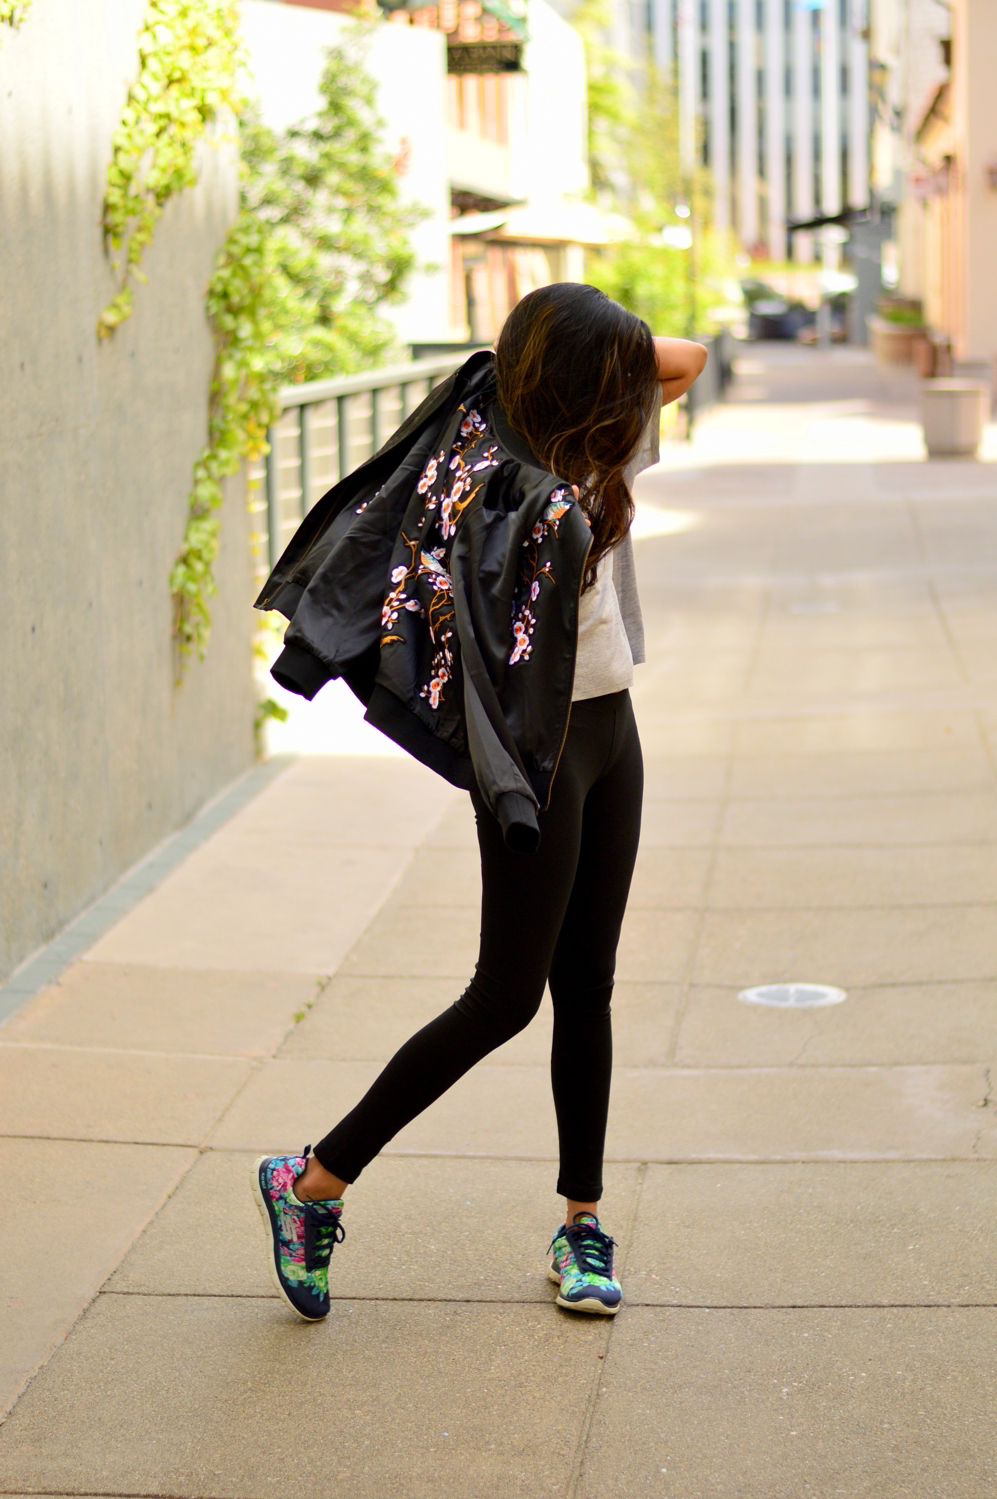 athleisure-girlboss-graphic-tee-weekend-wear-floral-sneakers-casual-blogger-outfit 6